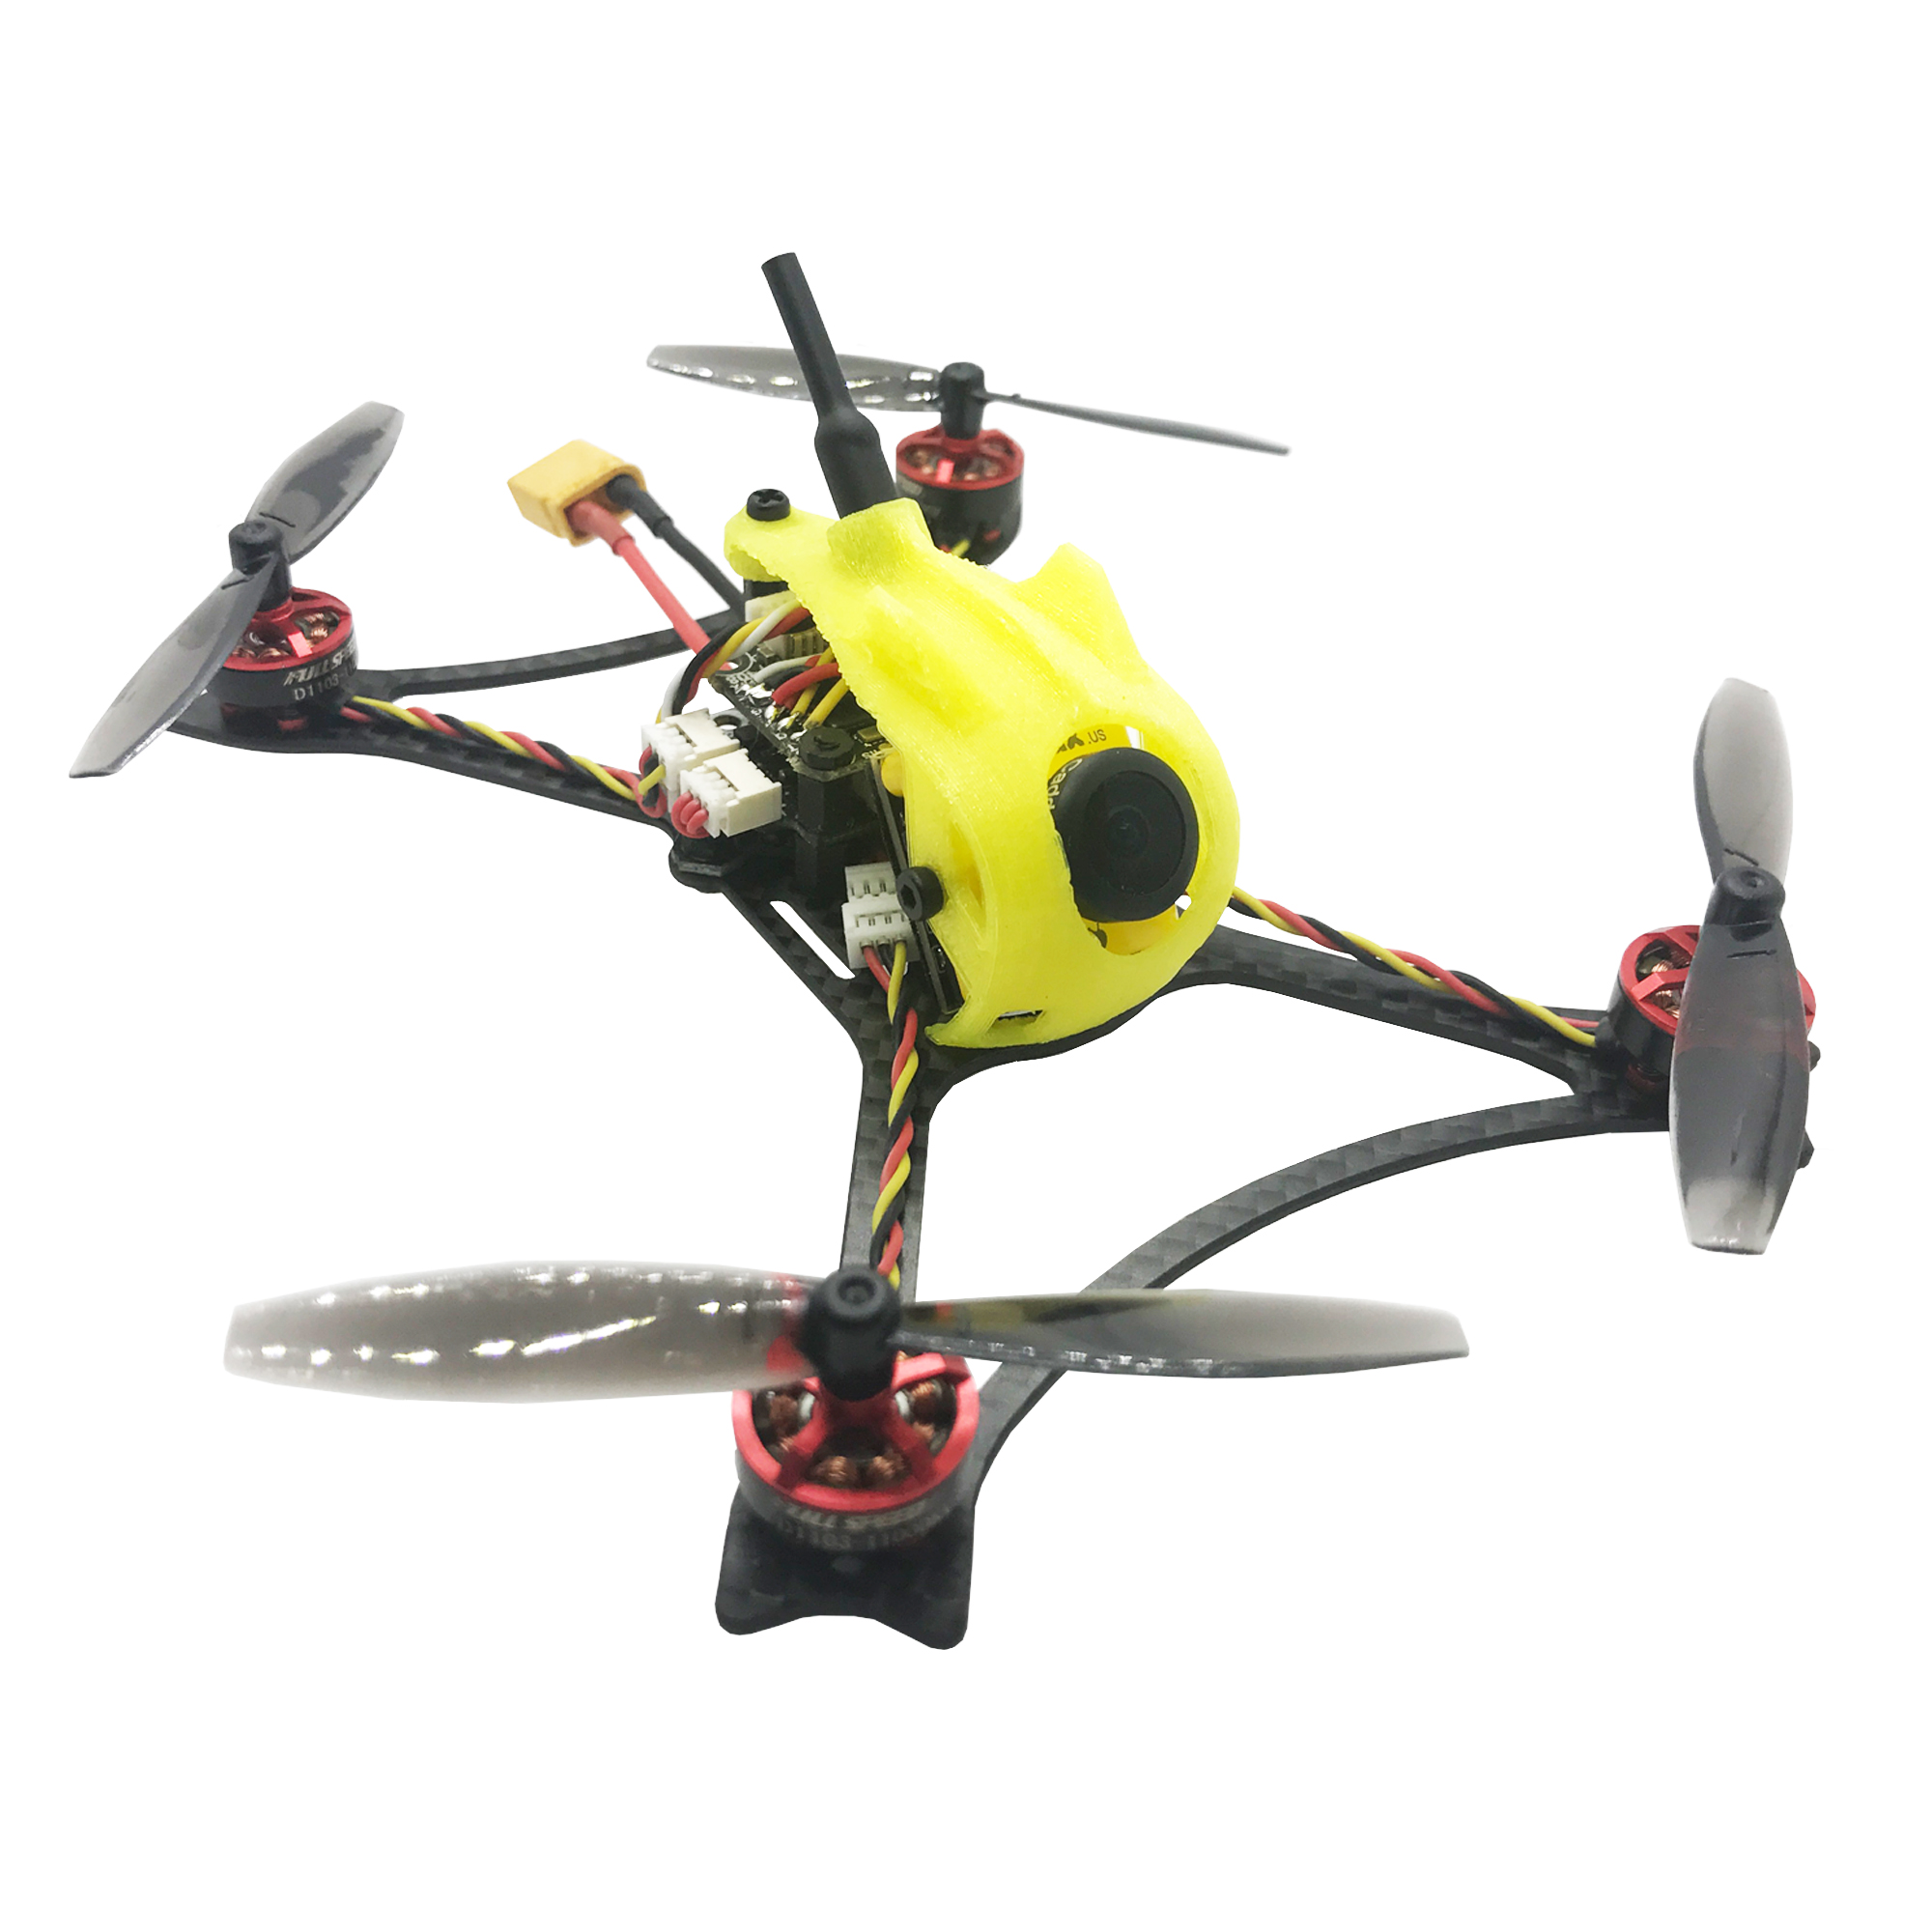 FullSpeed Toothpick FPV Racing Drone 2-3S 1103 65mm prop 25-600mw VTX